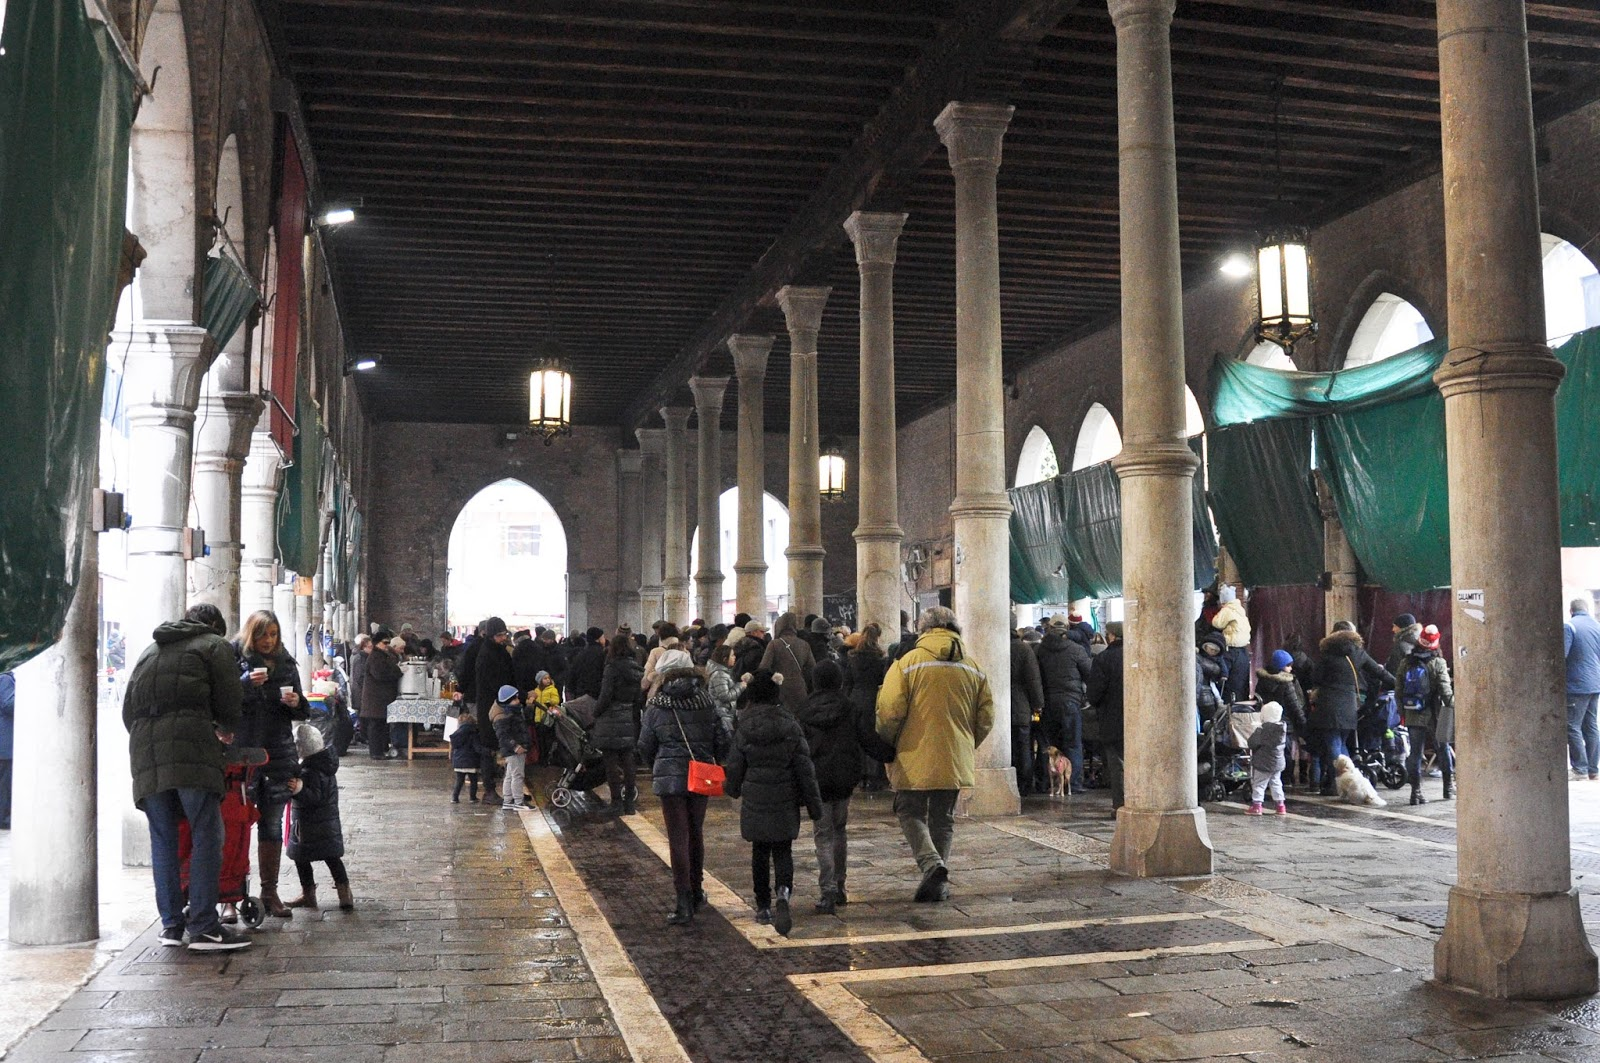 Befana celebration, The fish market, Venice, Italy